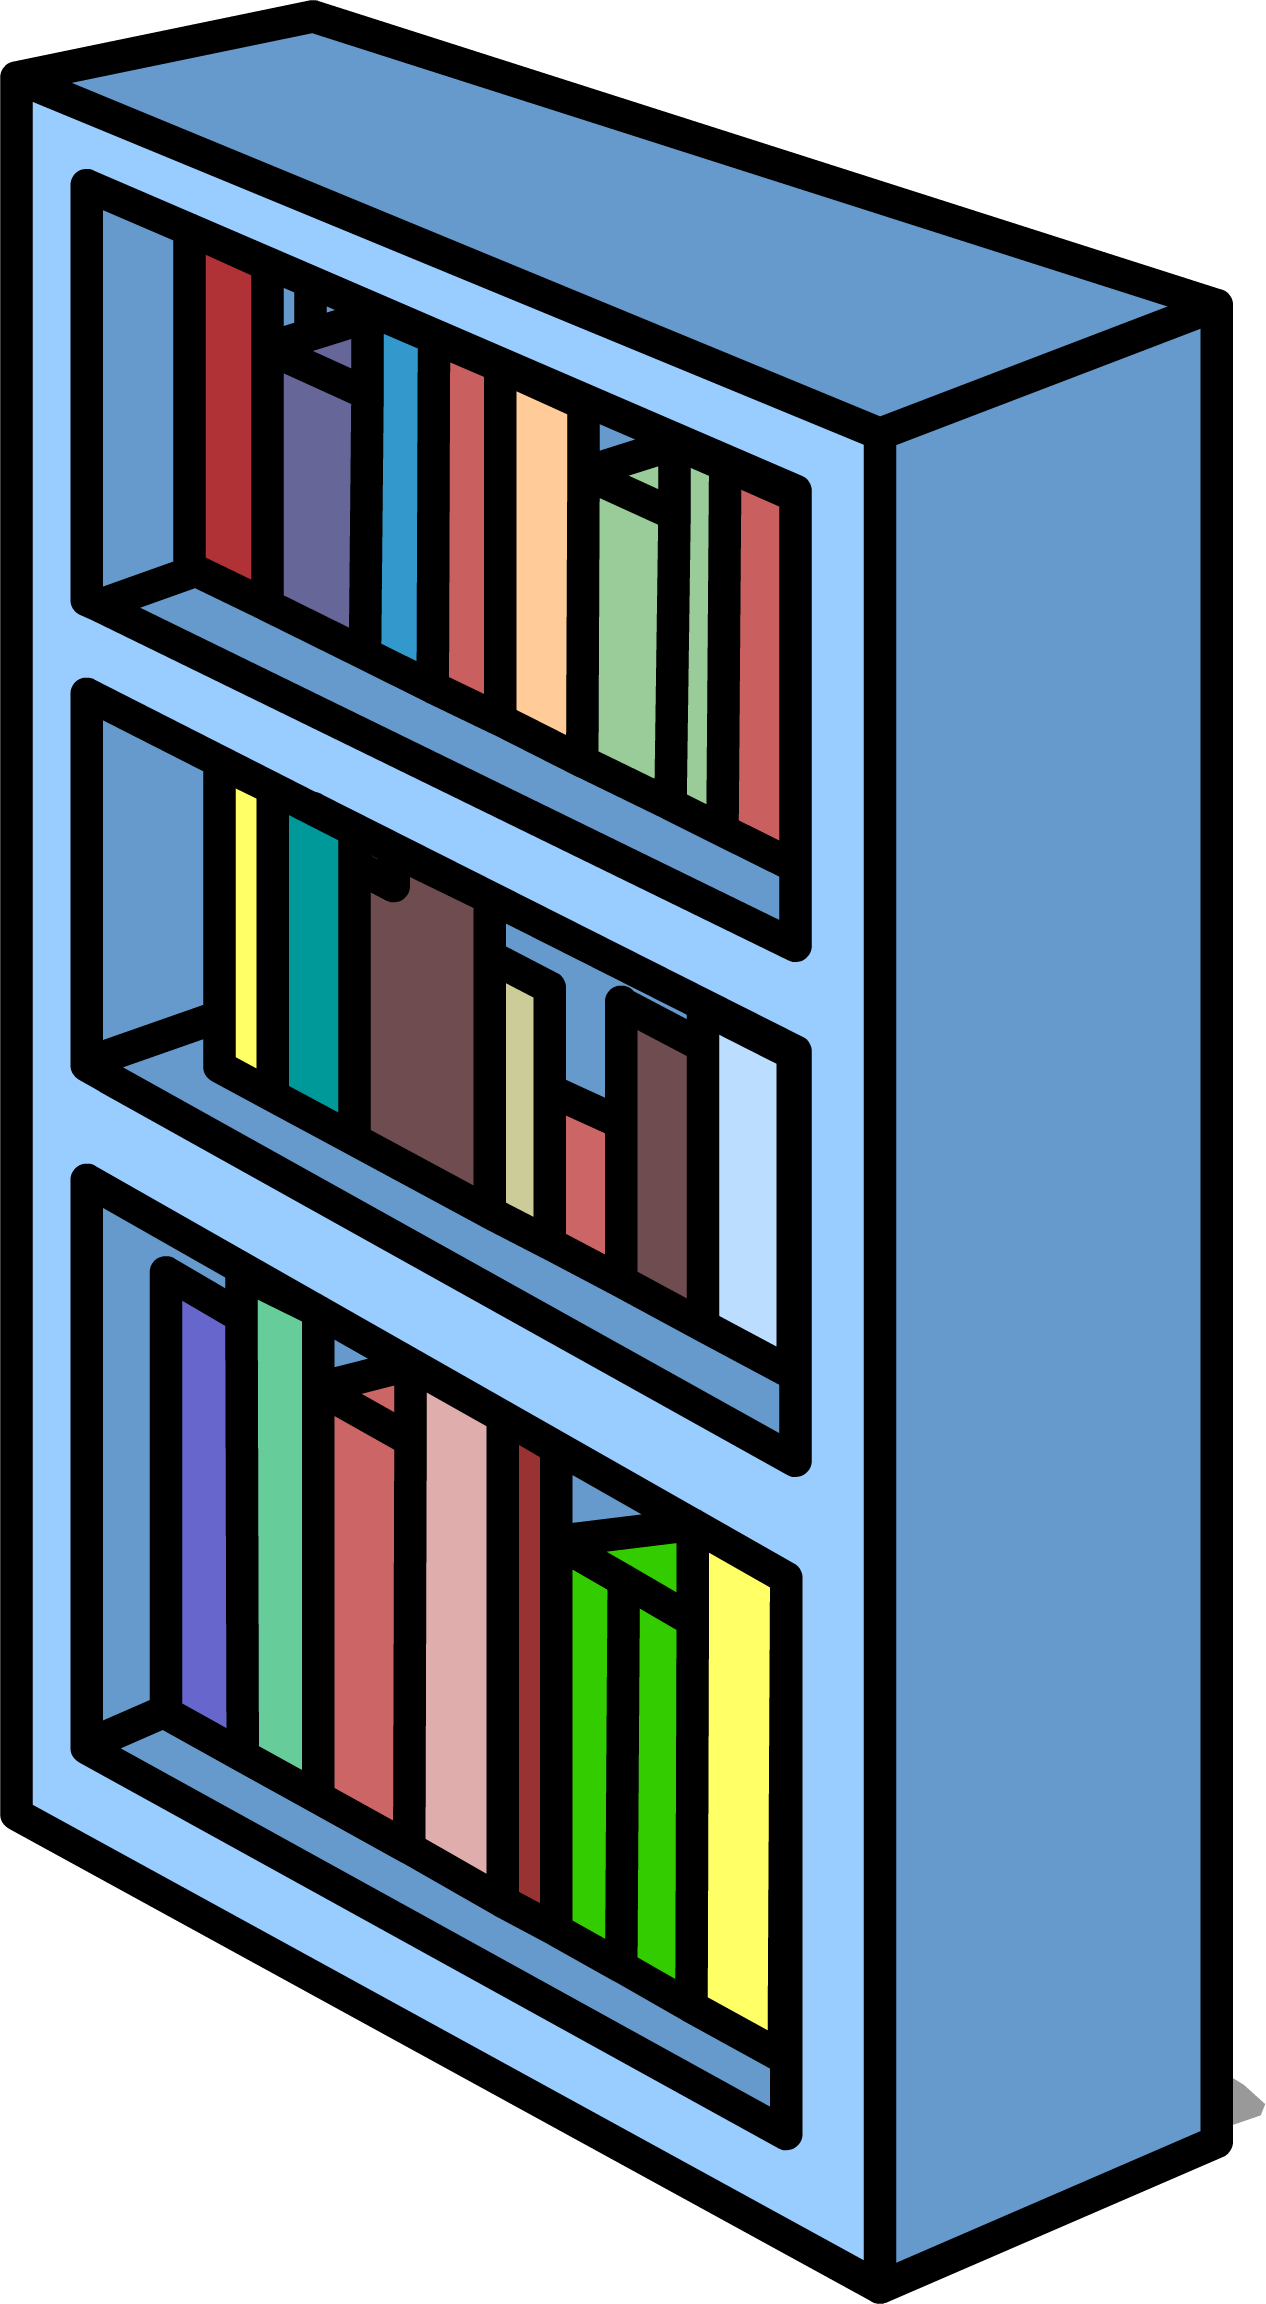 Clipart of a book shelf jpg black and white Image - Blue Bookshelf sprite 007.png | Club Penguin Wiki | FANDOM ... jpg black and white